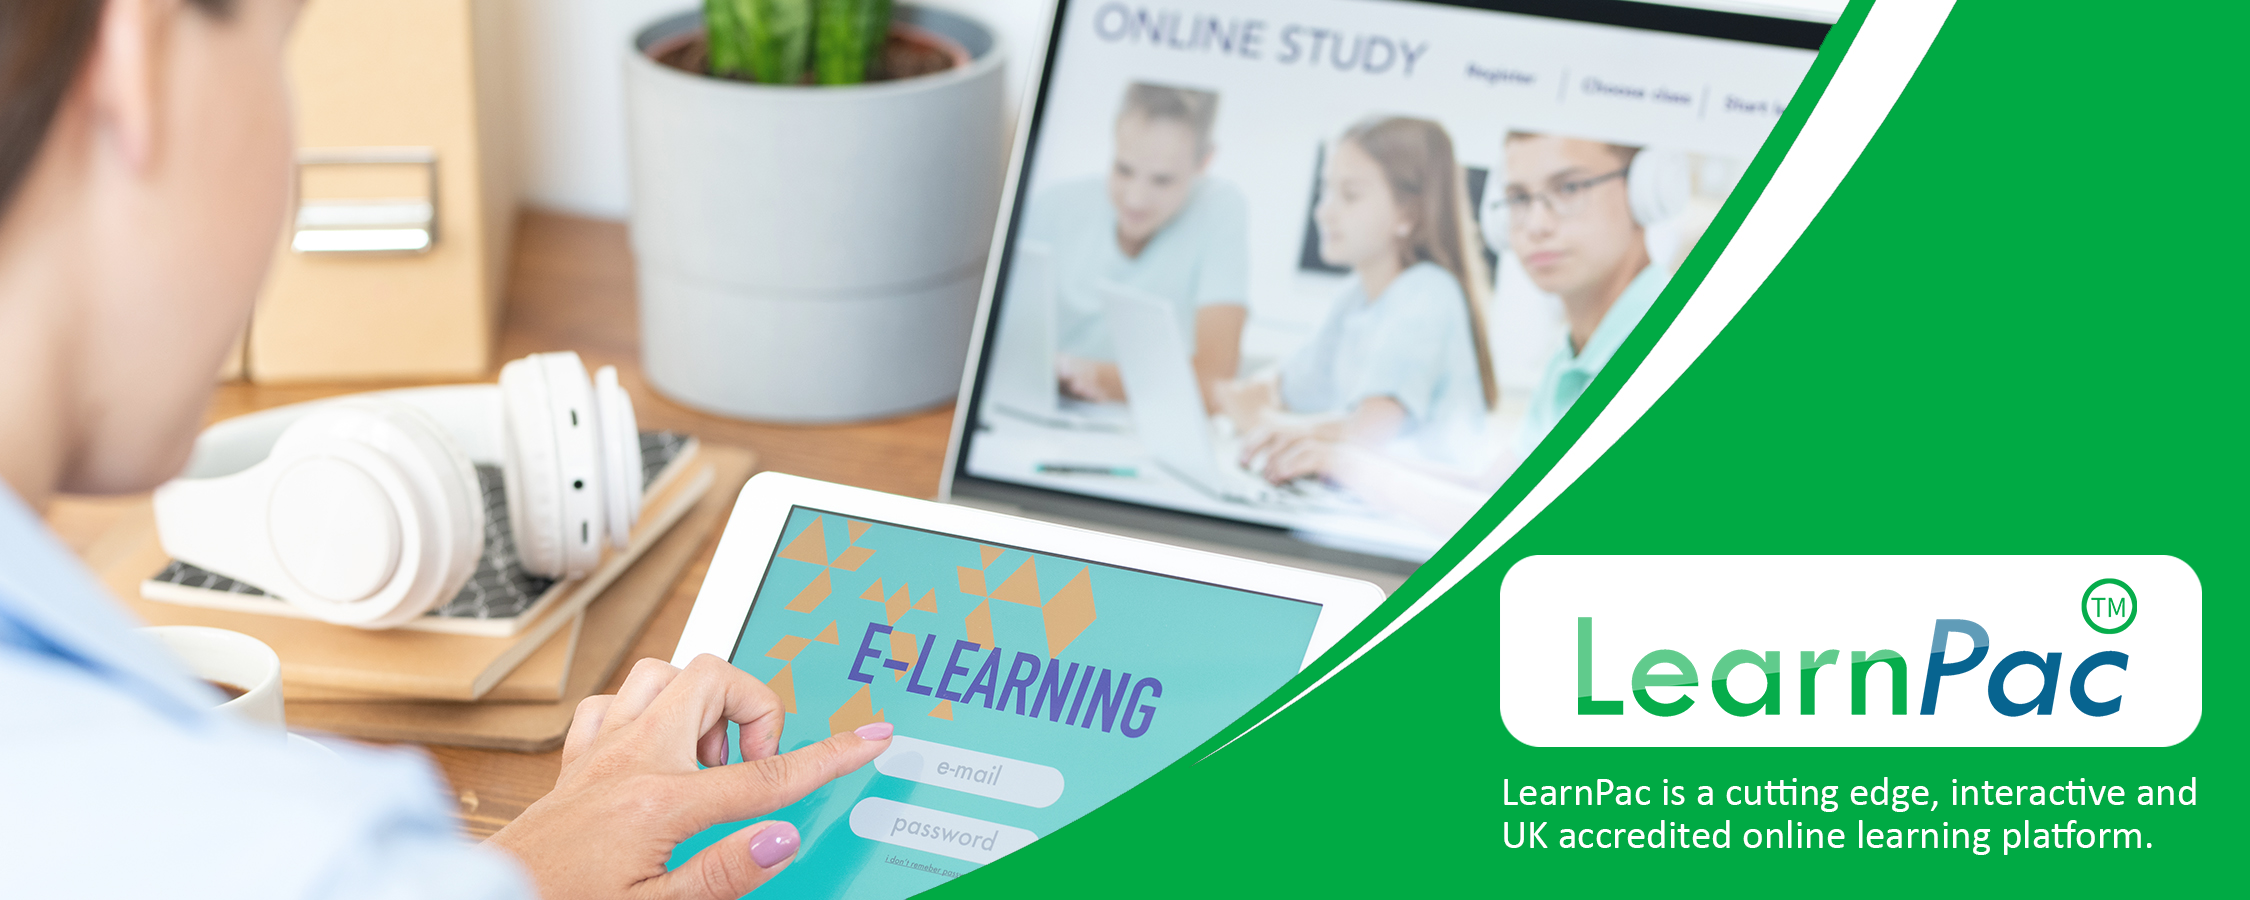 Your Personal Development - Online Learning Courses - E-Learning Courses - LearnPac Systems UK -